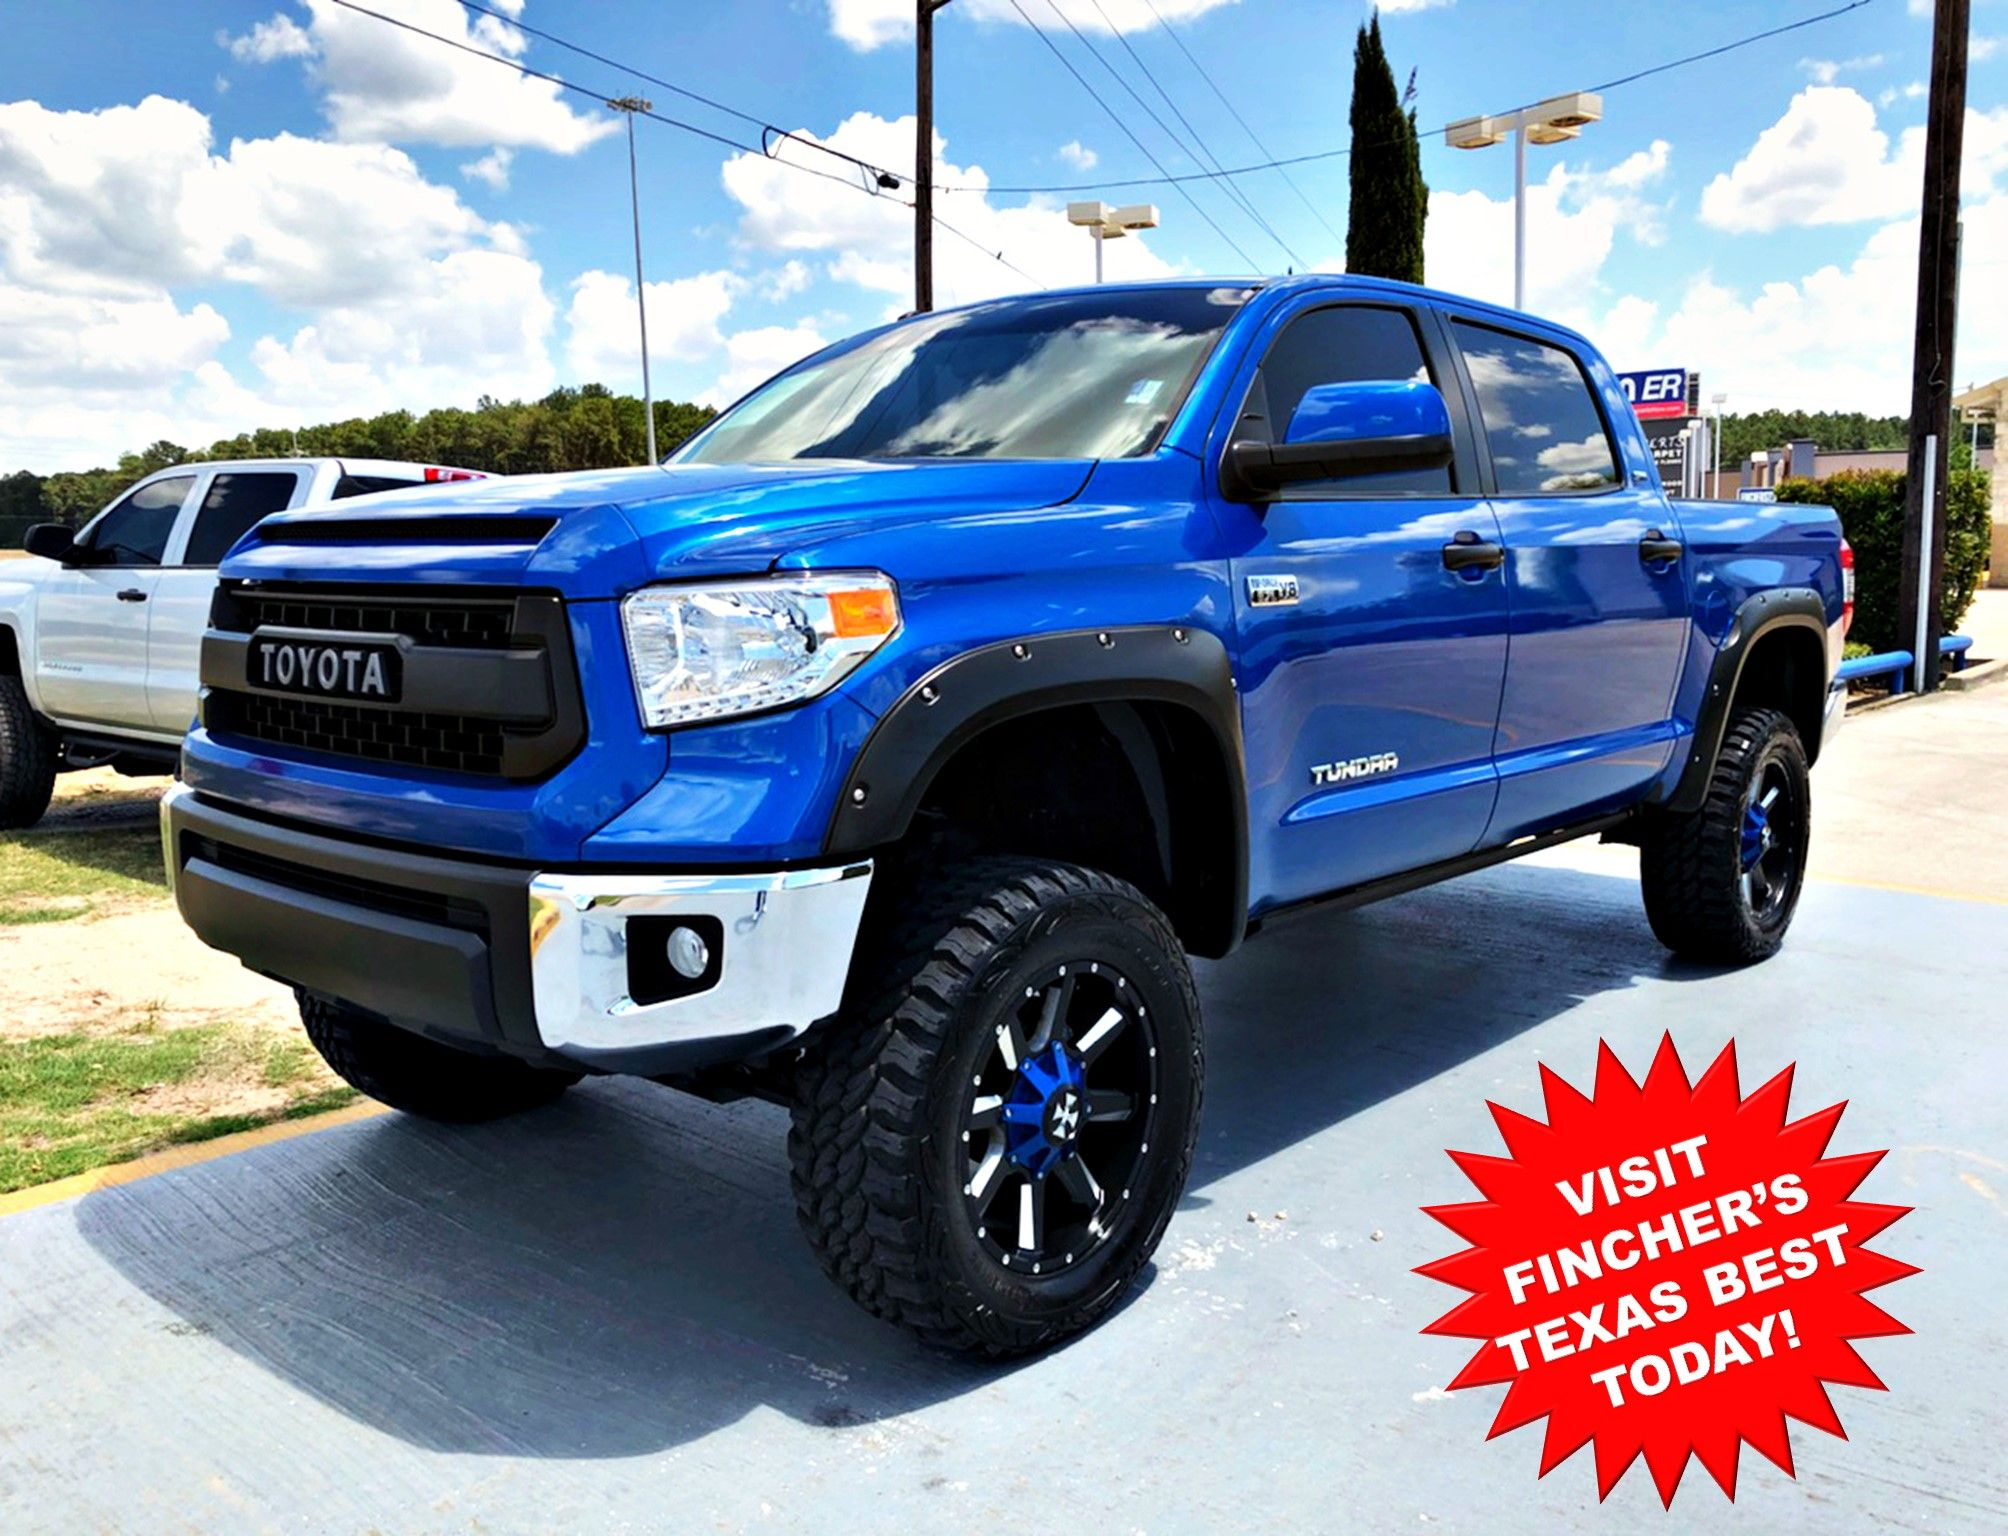 New Inventory Daily Custom Lifted 2016 Toyota Tundra Sr5 For Sale At Fincher S Texas Best Located In Toyota Tundra Toyota Tundra Sr5 2016 Toyota Tundra